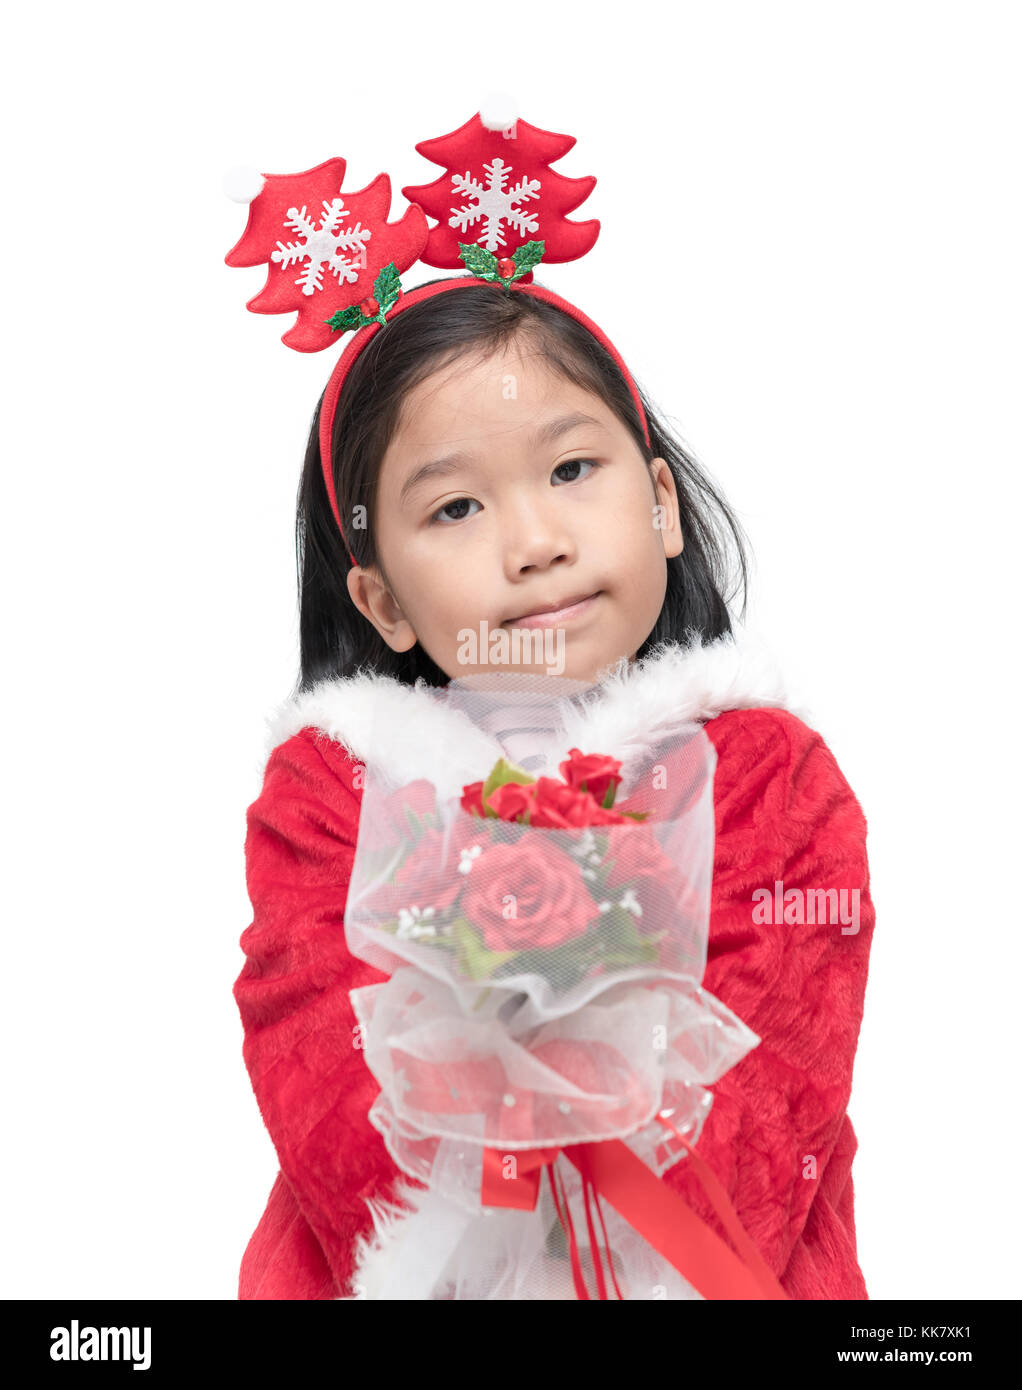 59323a1db Adorable Child Holding Rose Stock Photos   Adorable Child Holding ...